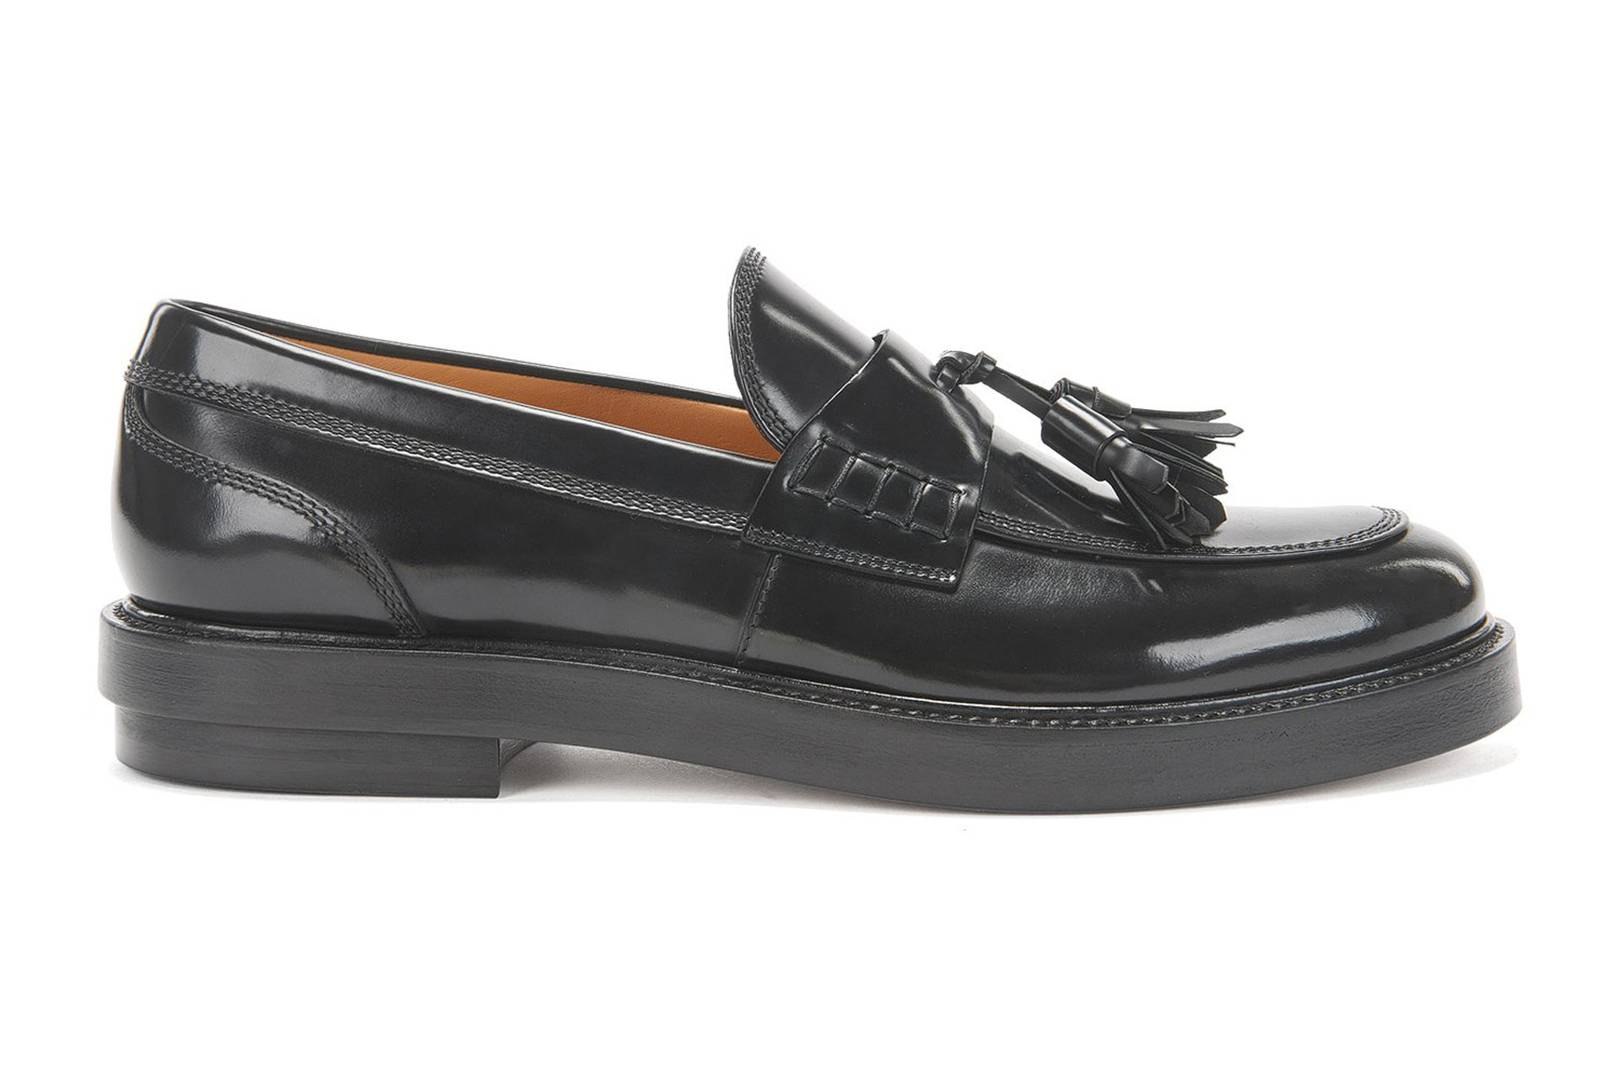 bbdfad957cb The top 10 loafers for any occasion